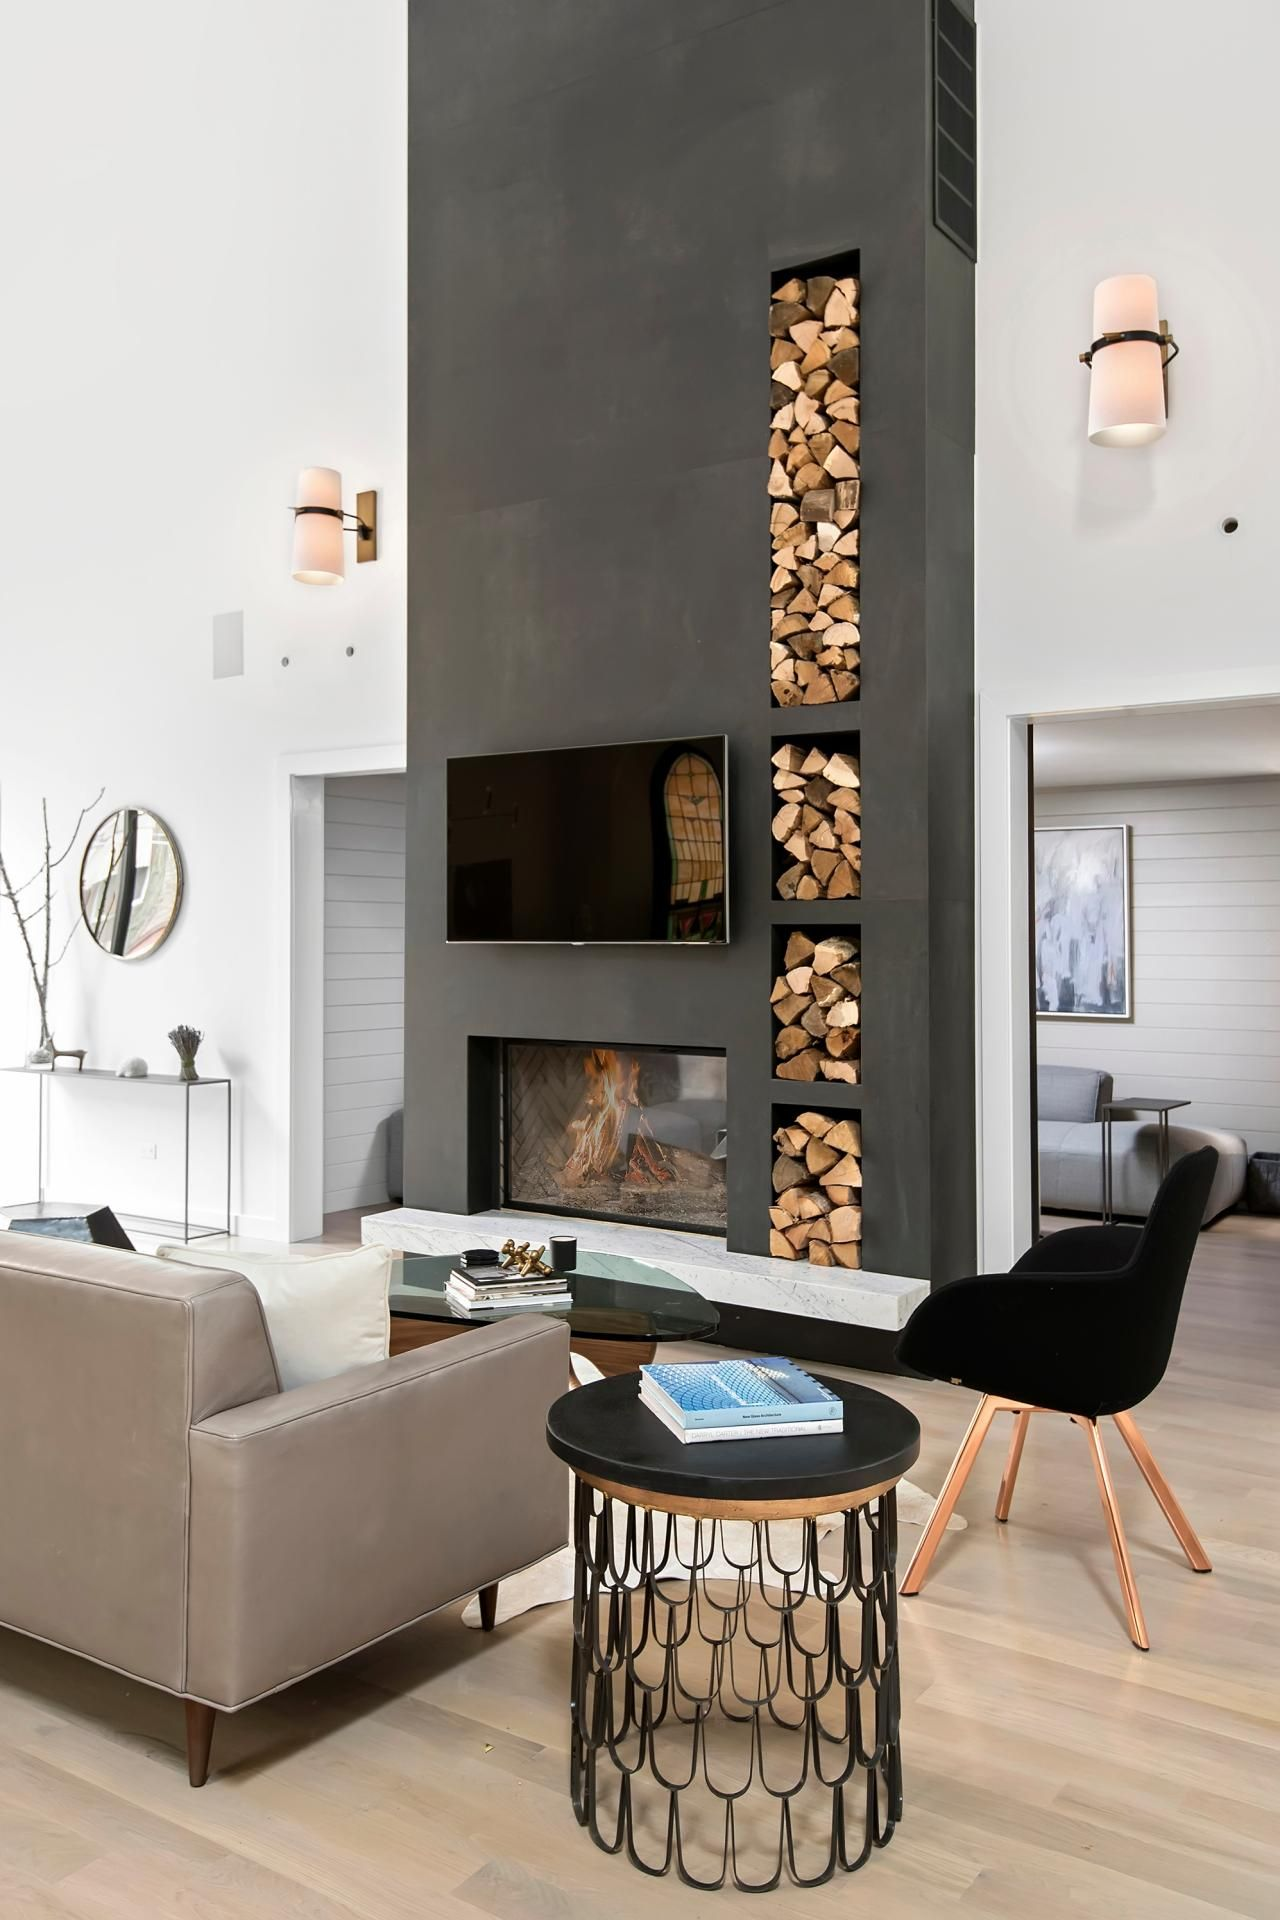 Lovely This Modern Living Room Turns Its Firewood Storage Into An Eye Catching  Part Of The